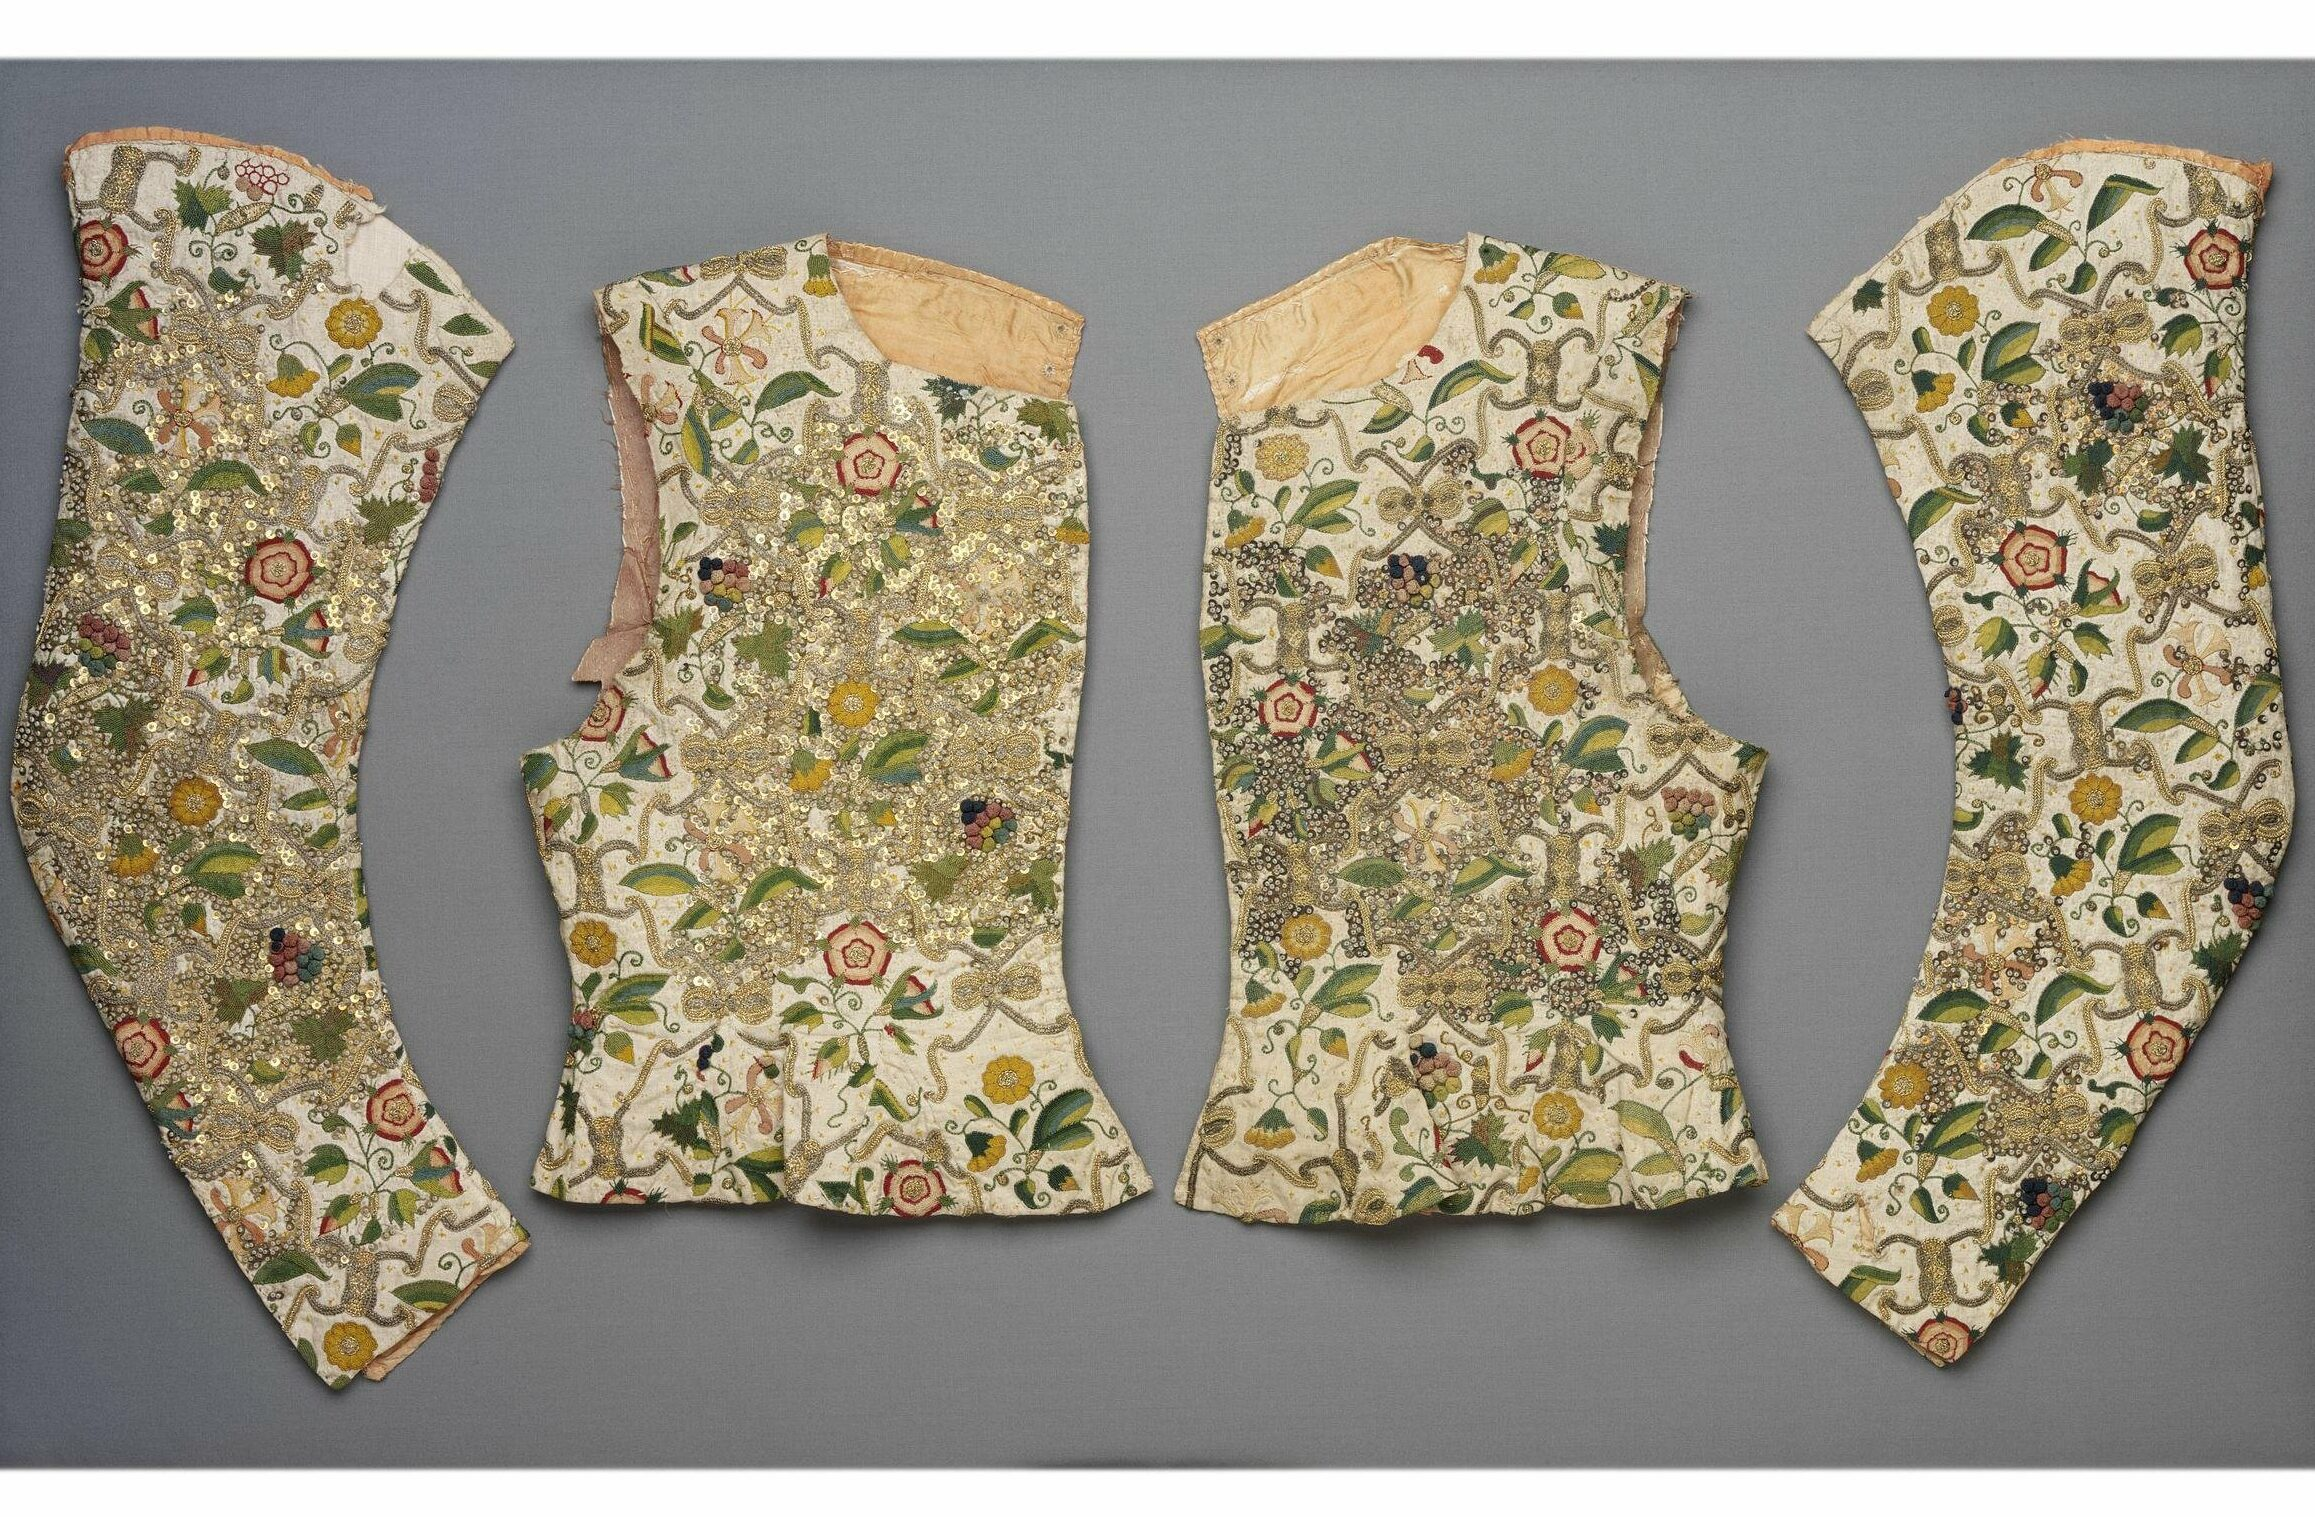 Waistcoat, 1600-1620, altered 1620s, V&A Museum